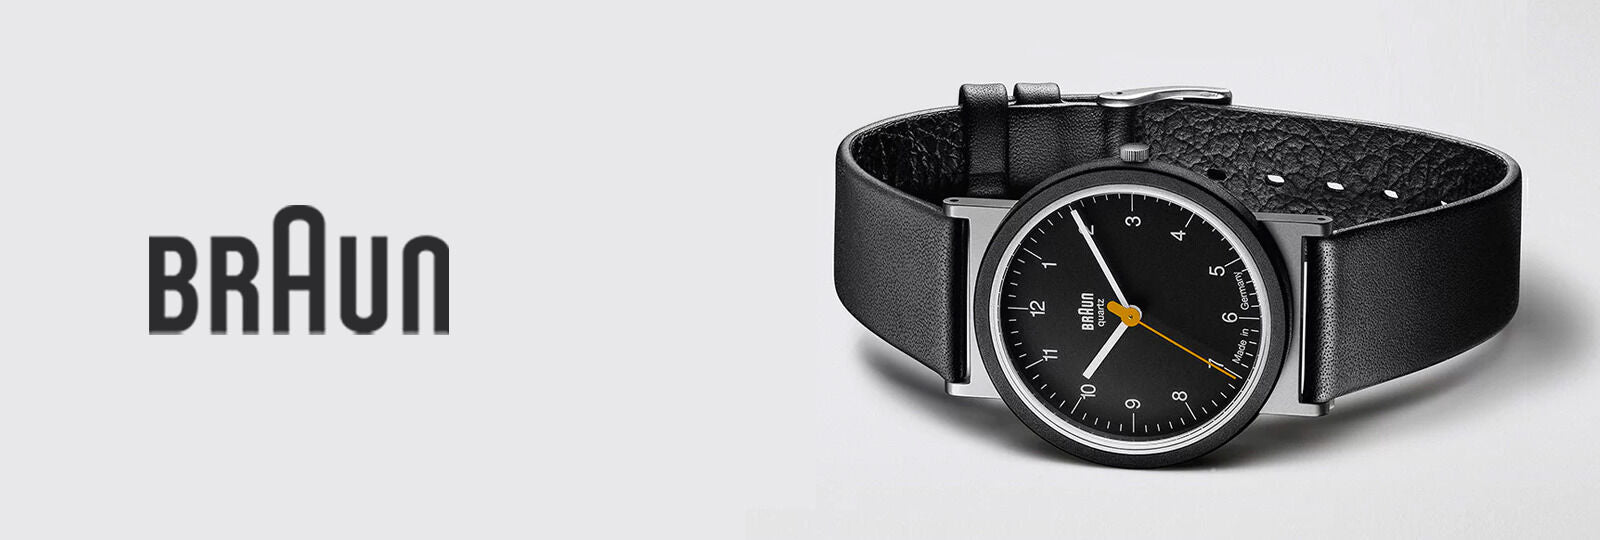 Braun watches available at Sportique